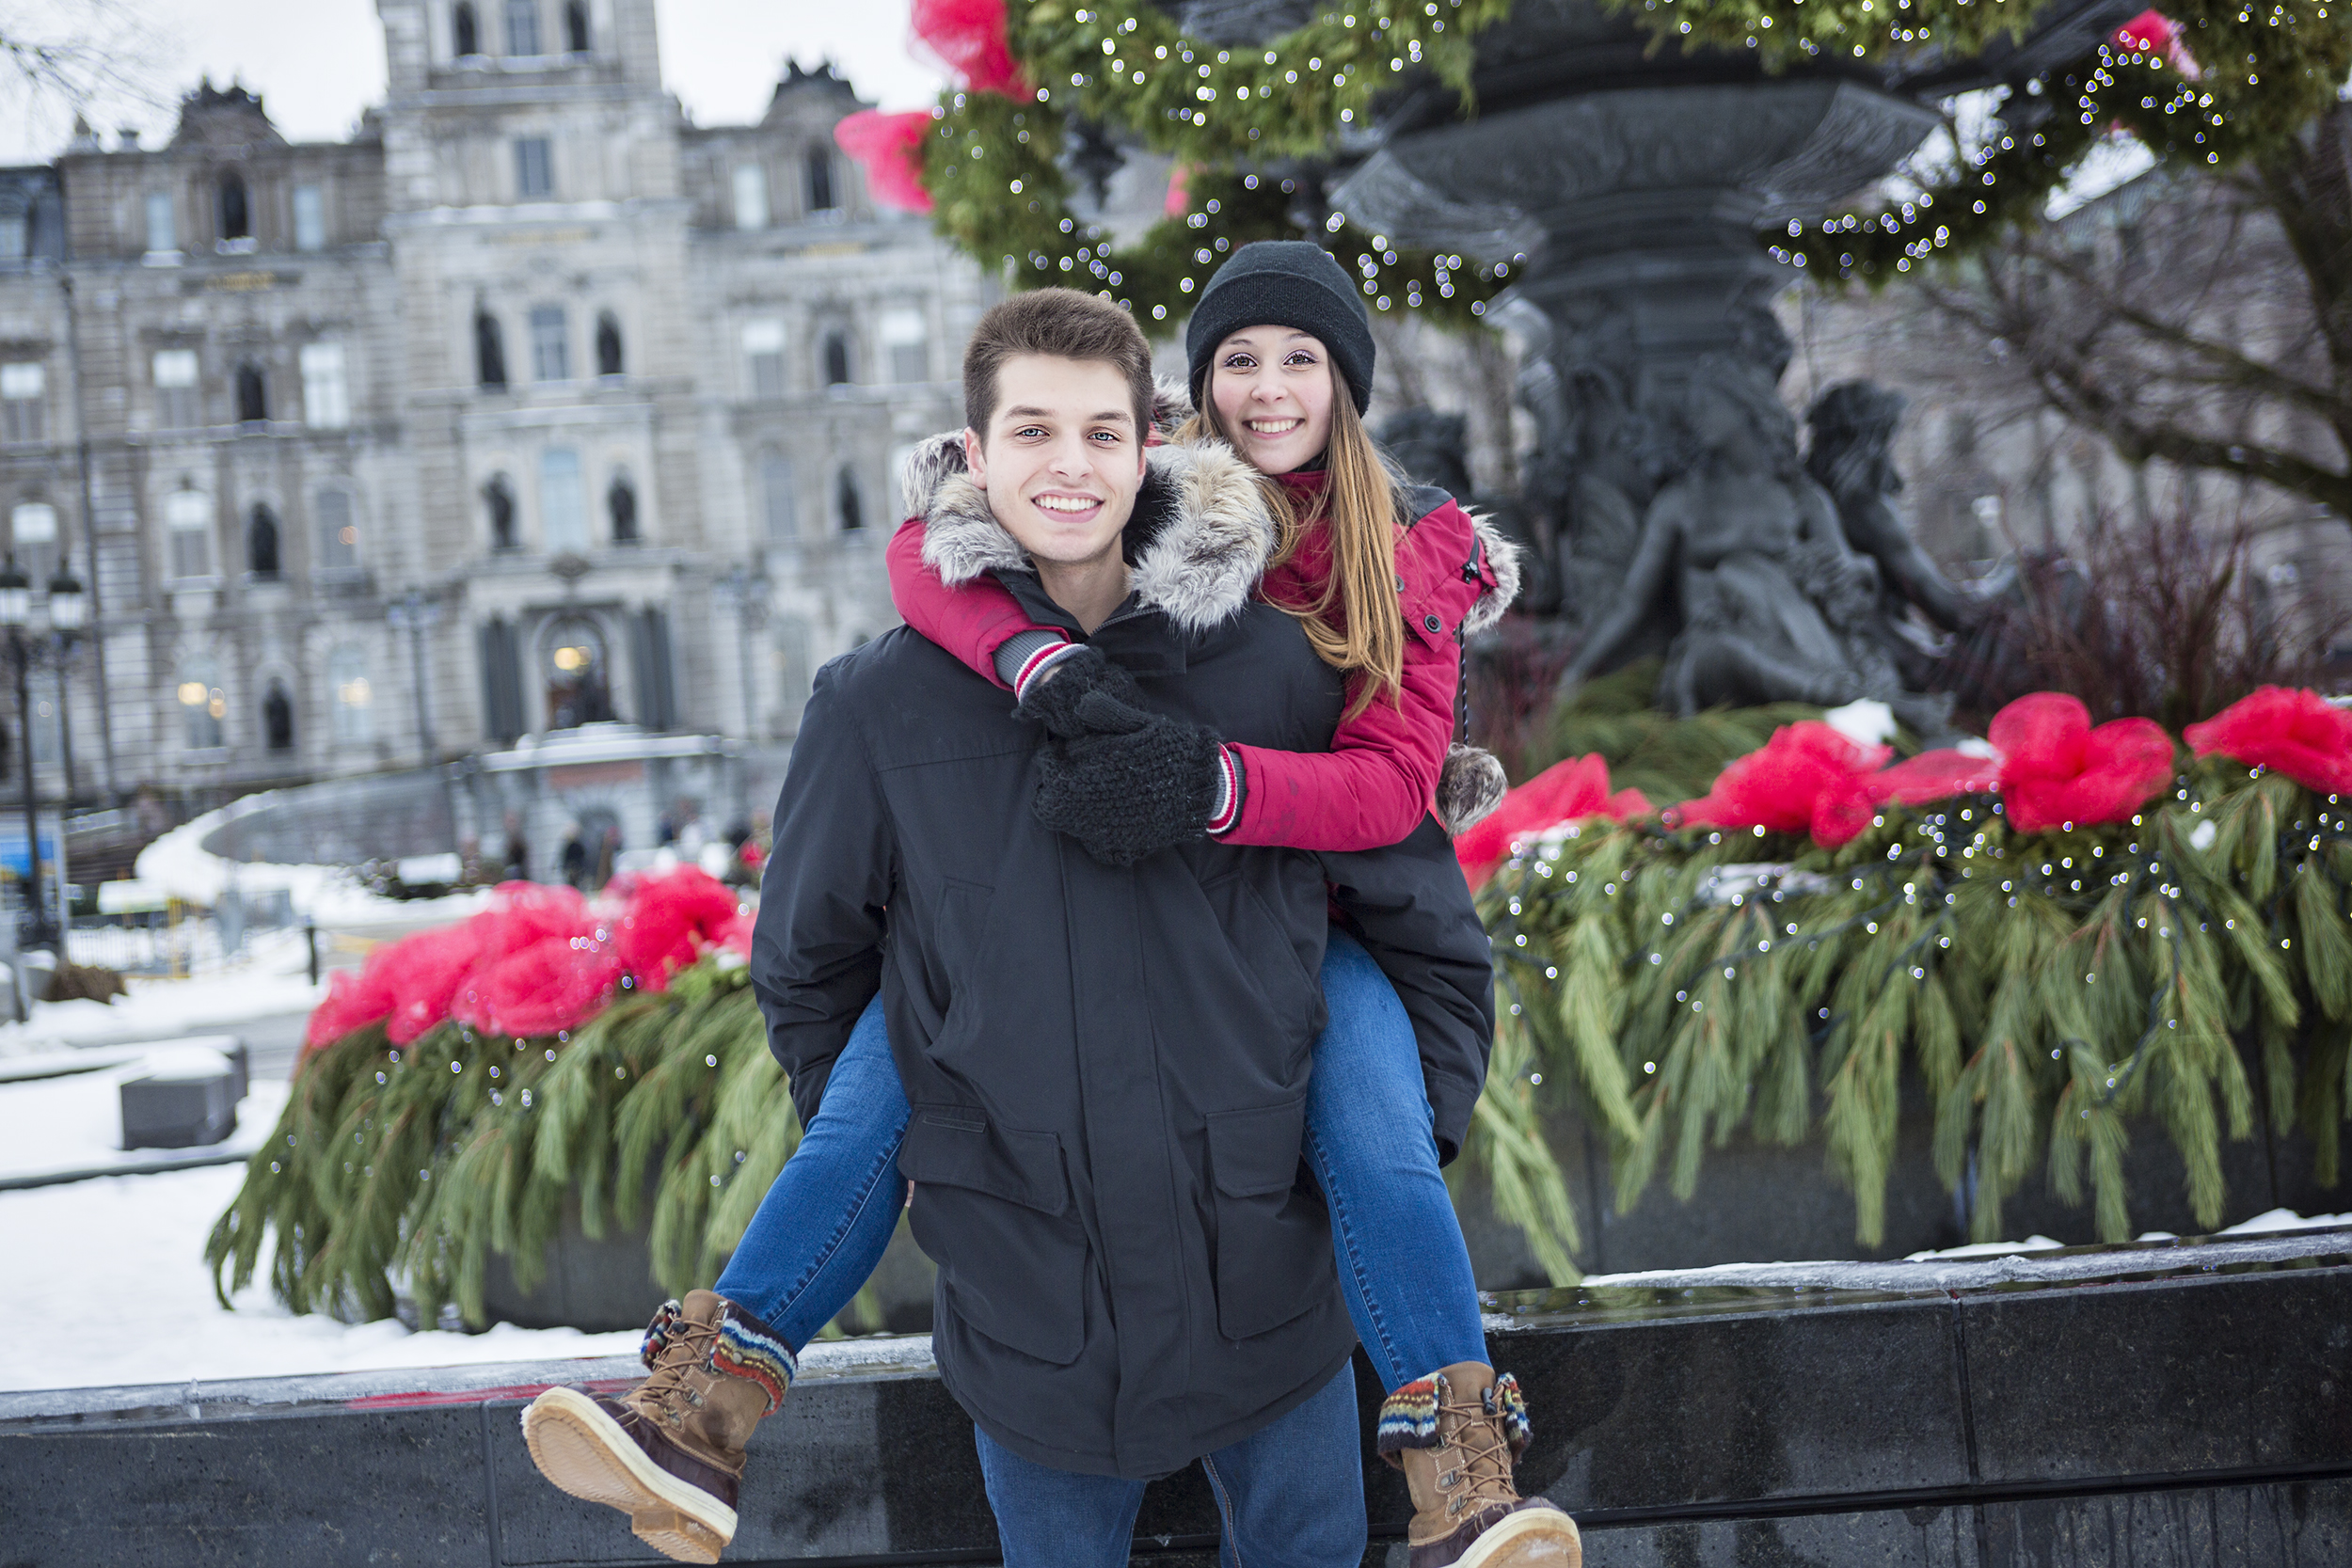 An Image of affectionate couple in park on winter season